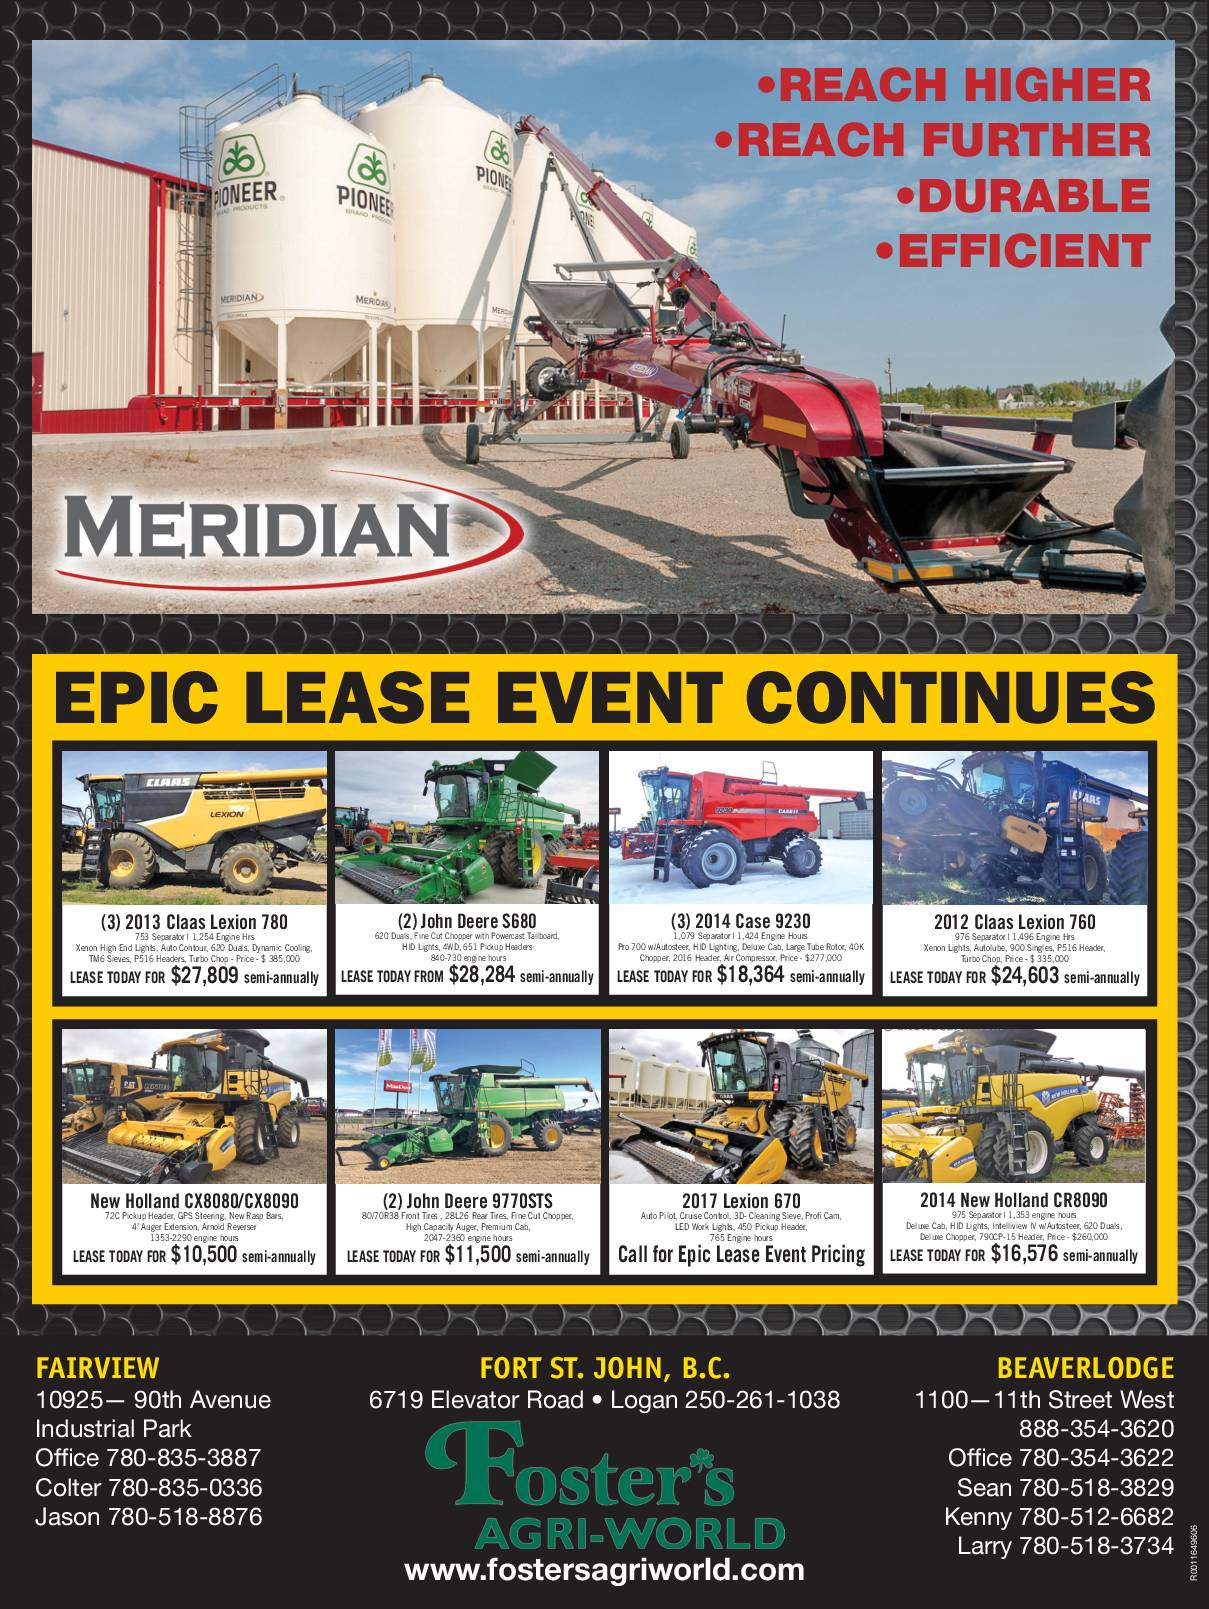 Epic Lease Event